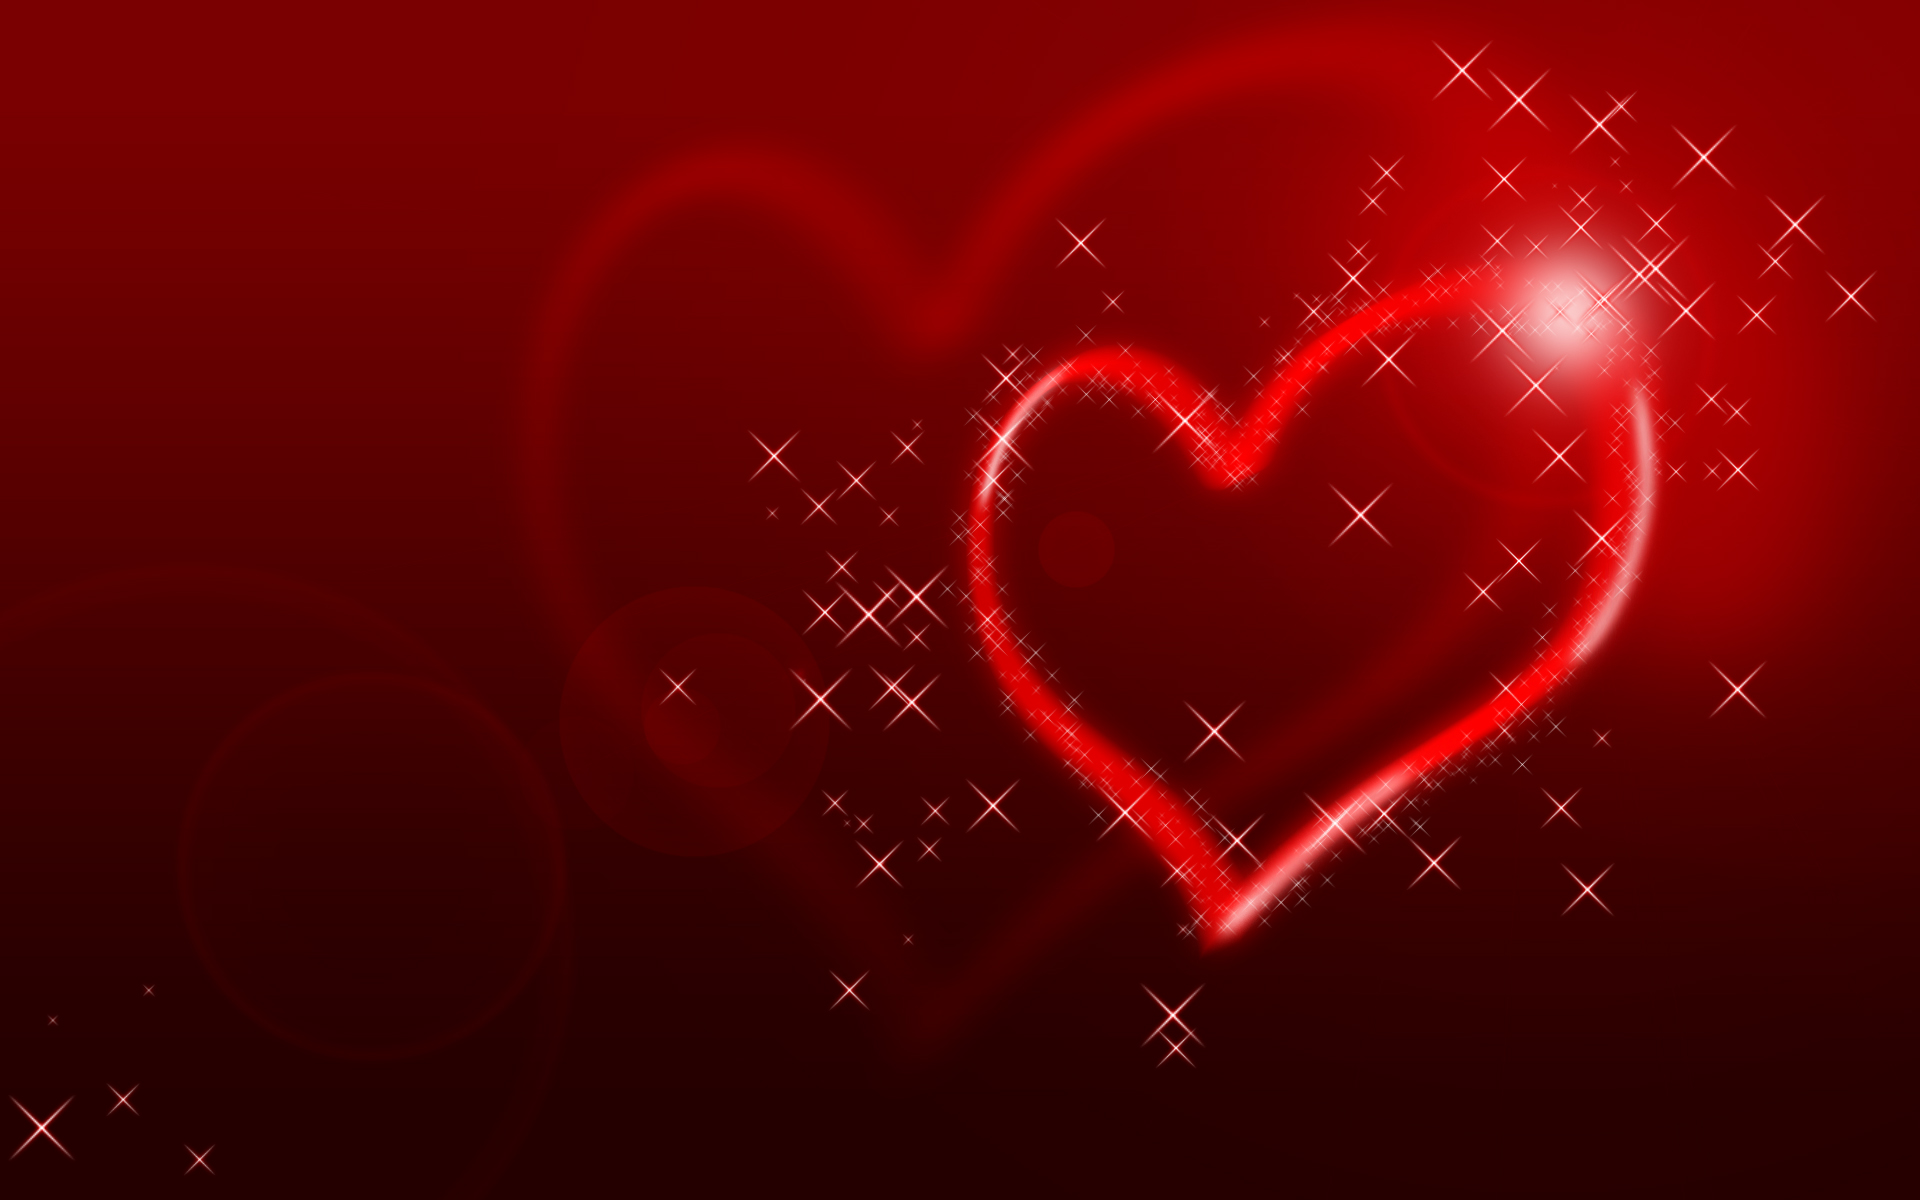 Glittering Hearts  HDs Wallpaper PPT Backgrounds